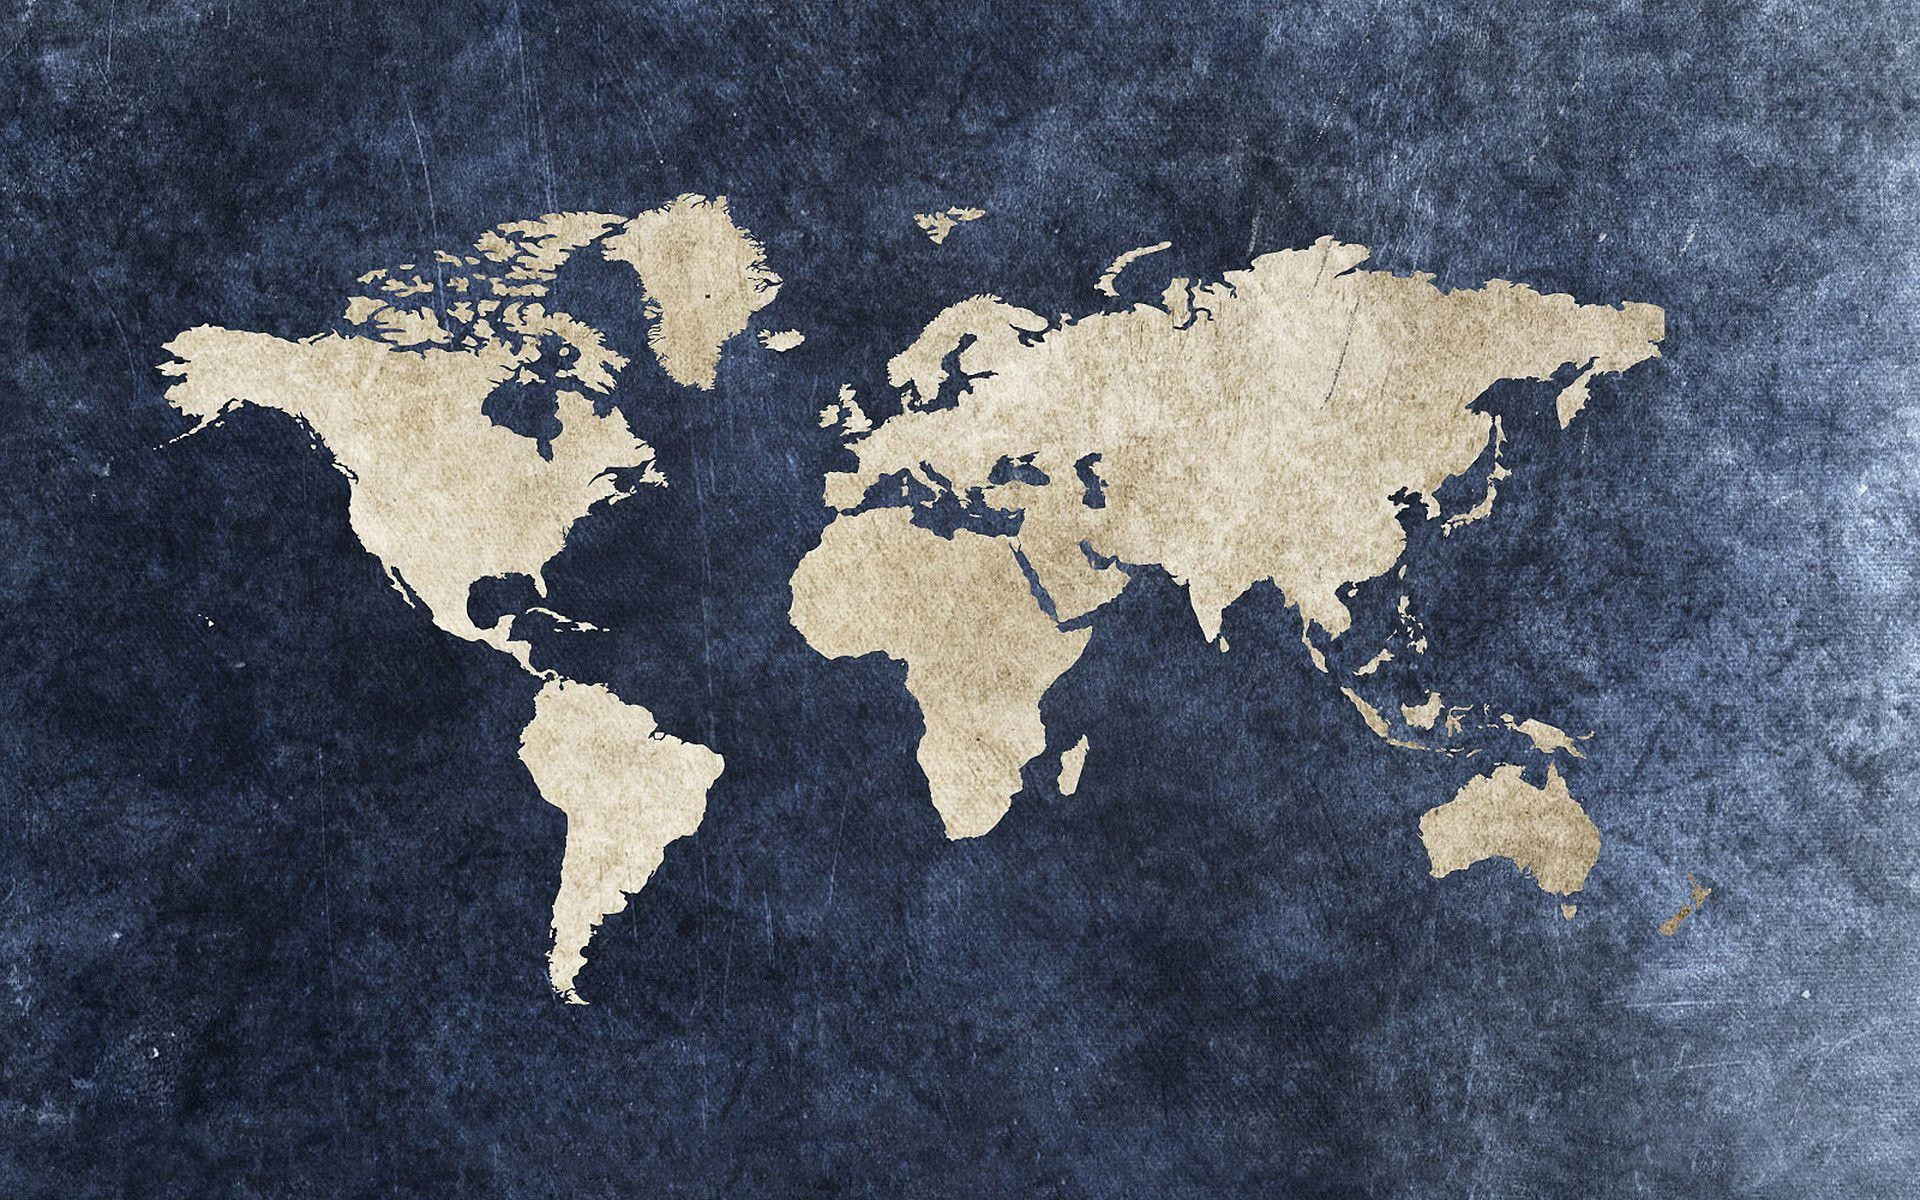 World map desktop wallpaper 54 images 1920x1200 world map wallpapers full hd wallpaper search gumiabroncs Choice Image